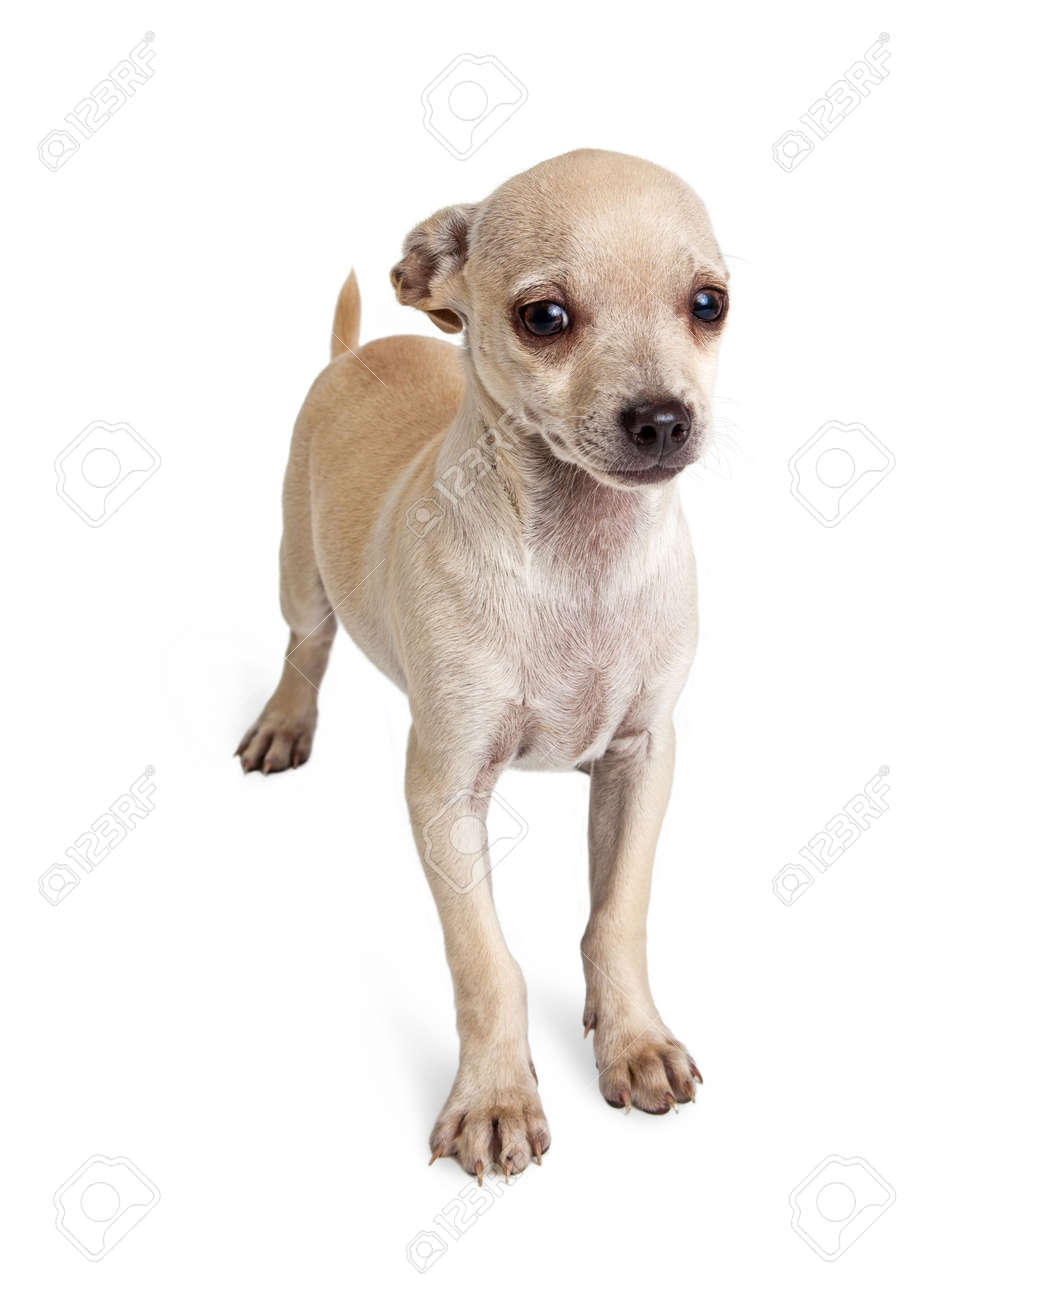 Timid Little White Color Chihuahua Mixed Breed Dog Standing Stock